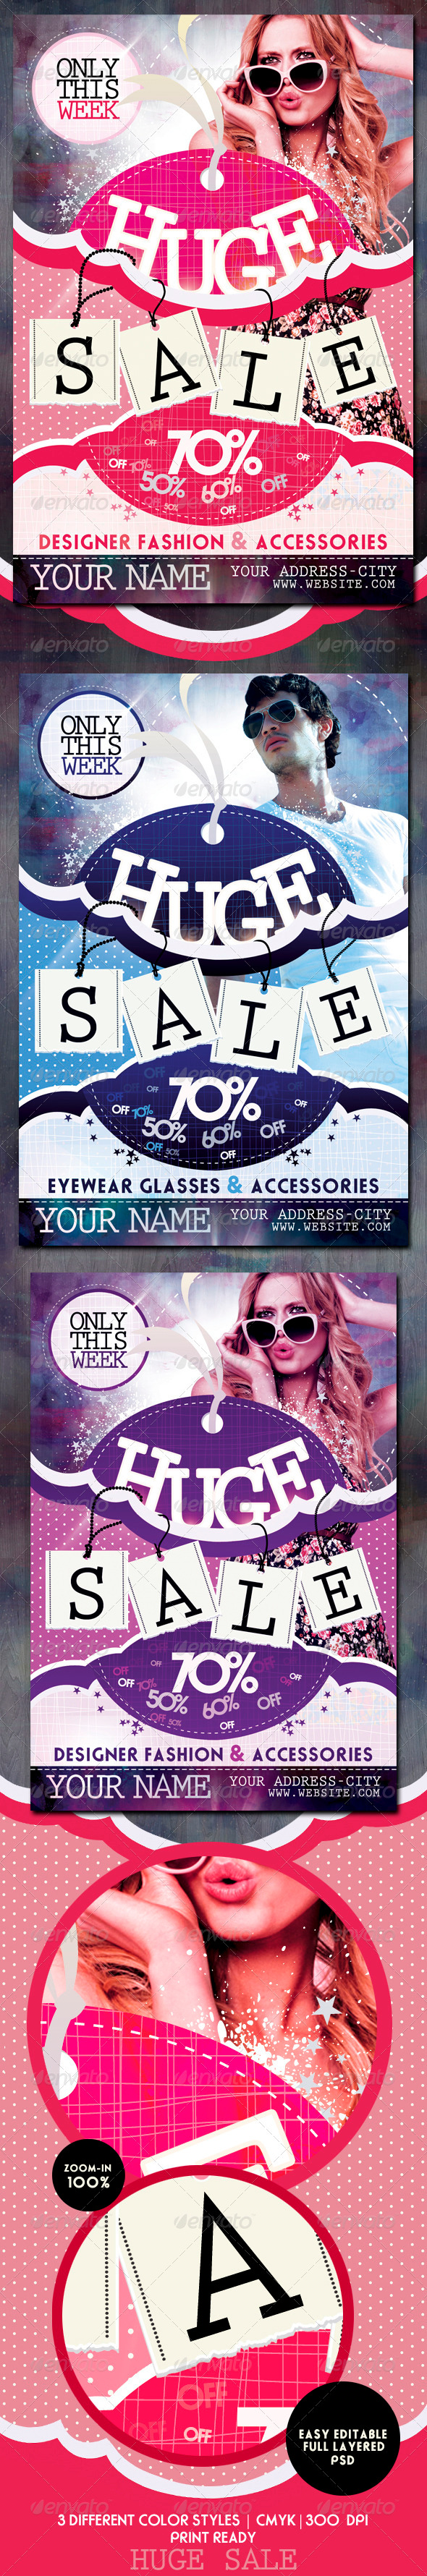 Sale / Promotion Flyer Template - Commerce Flyers